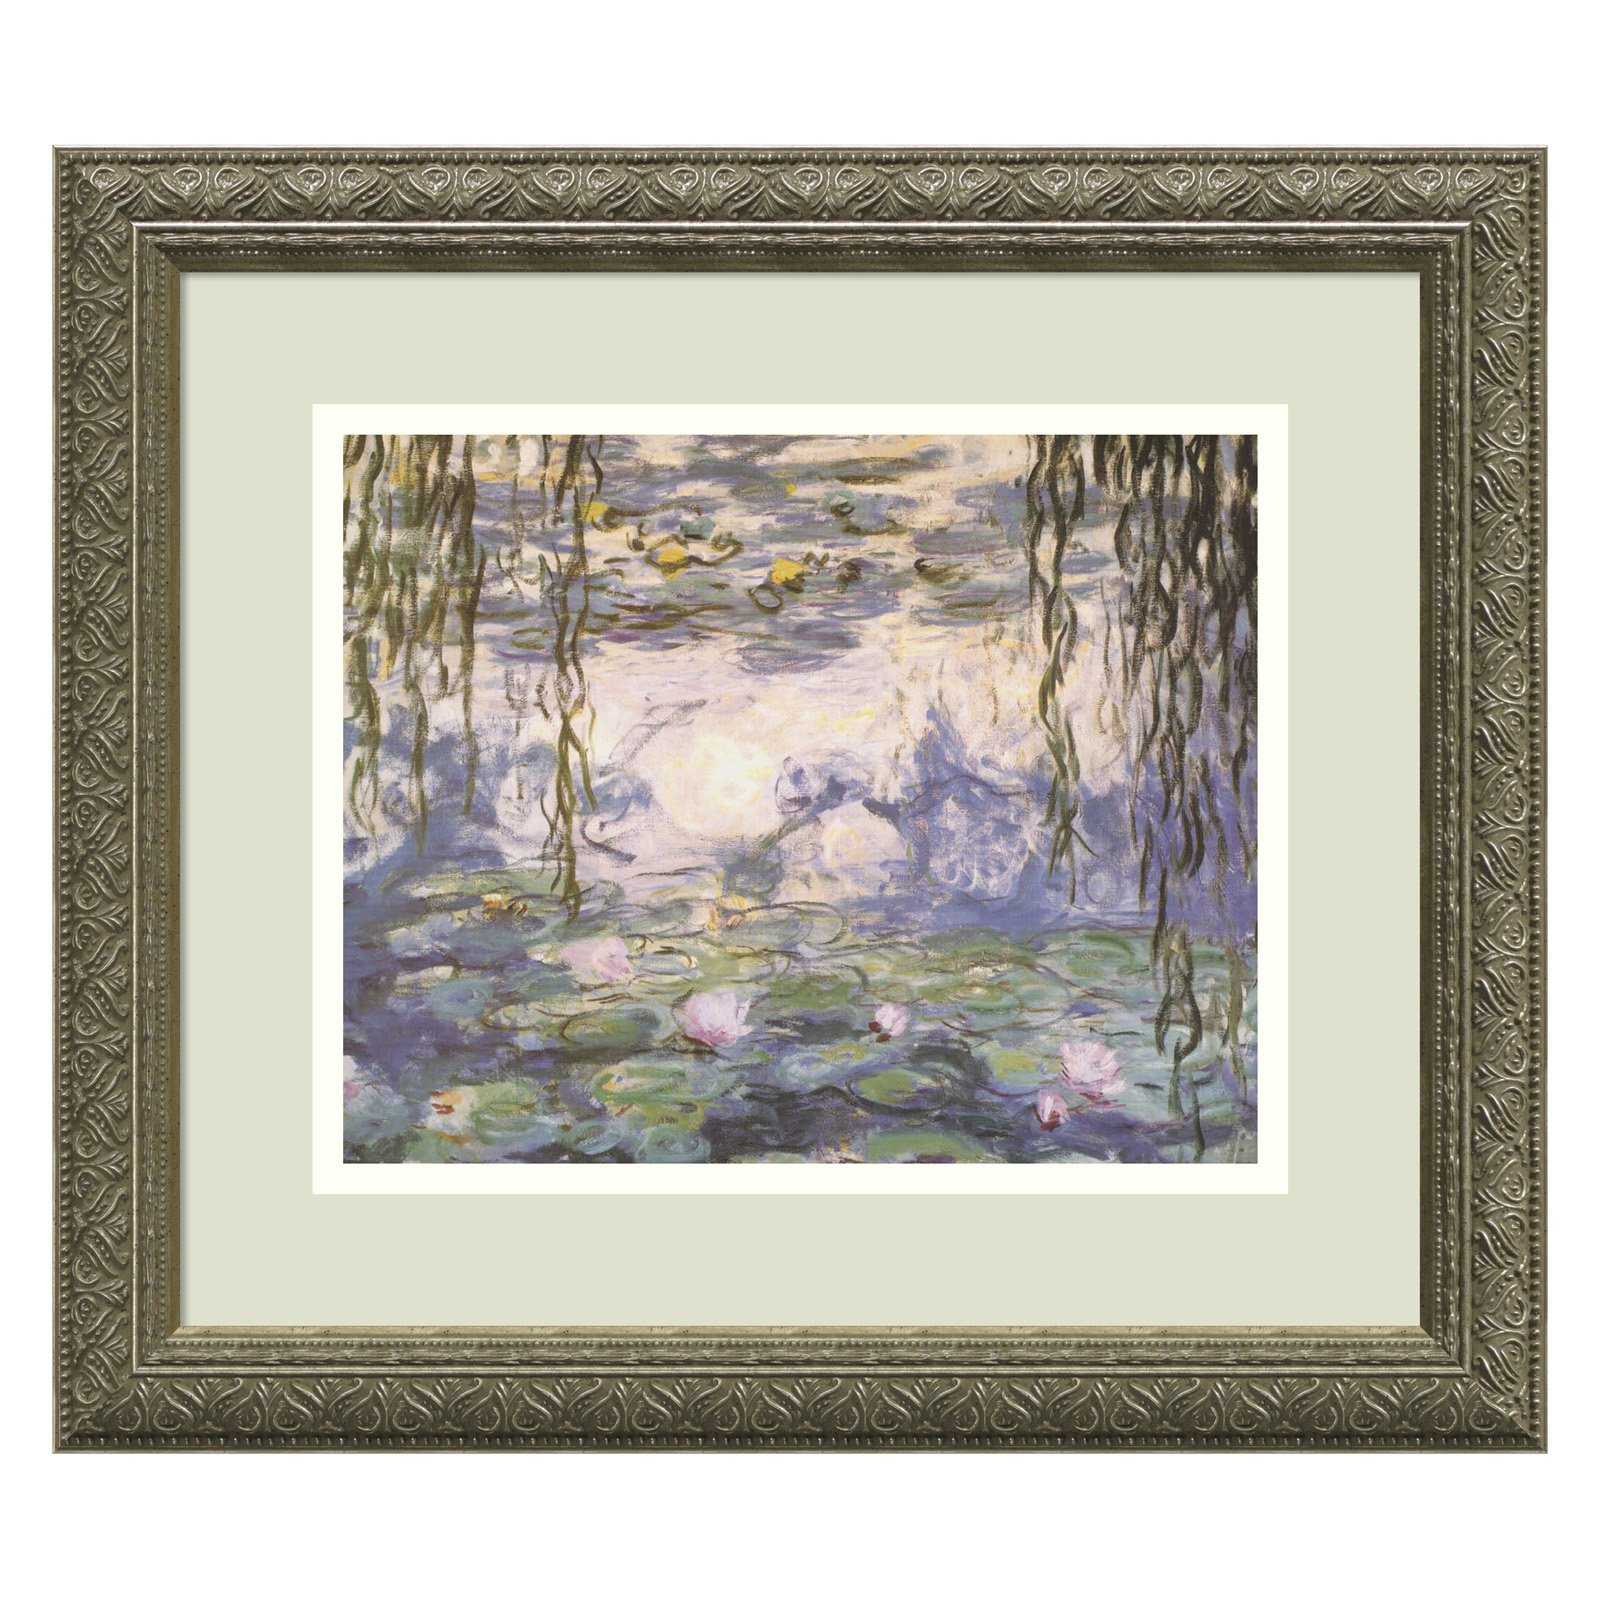 Water Lilies and Willow Branches Framed Wall Art by Claude Monet - 16.12W x 14.12H in.